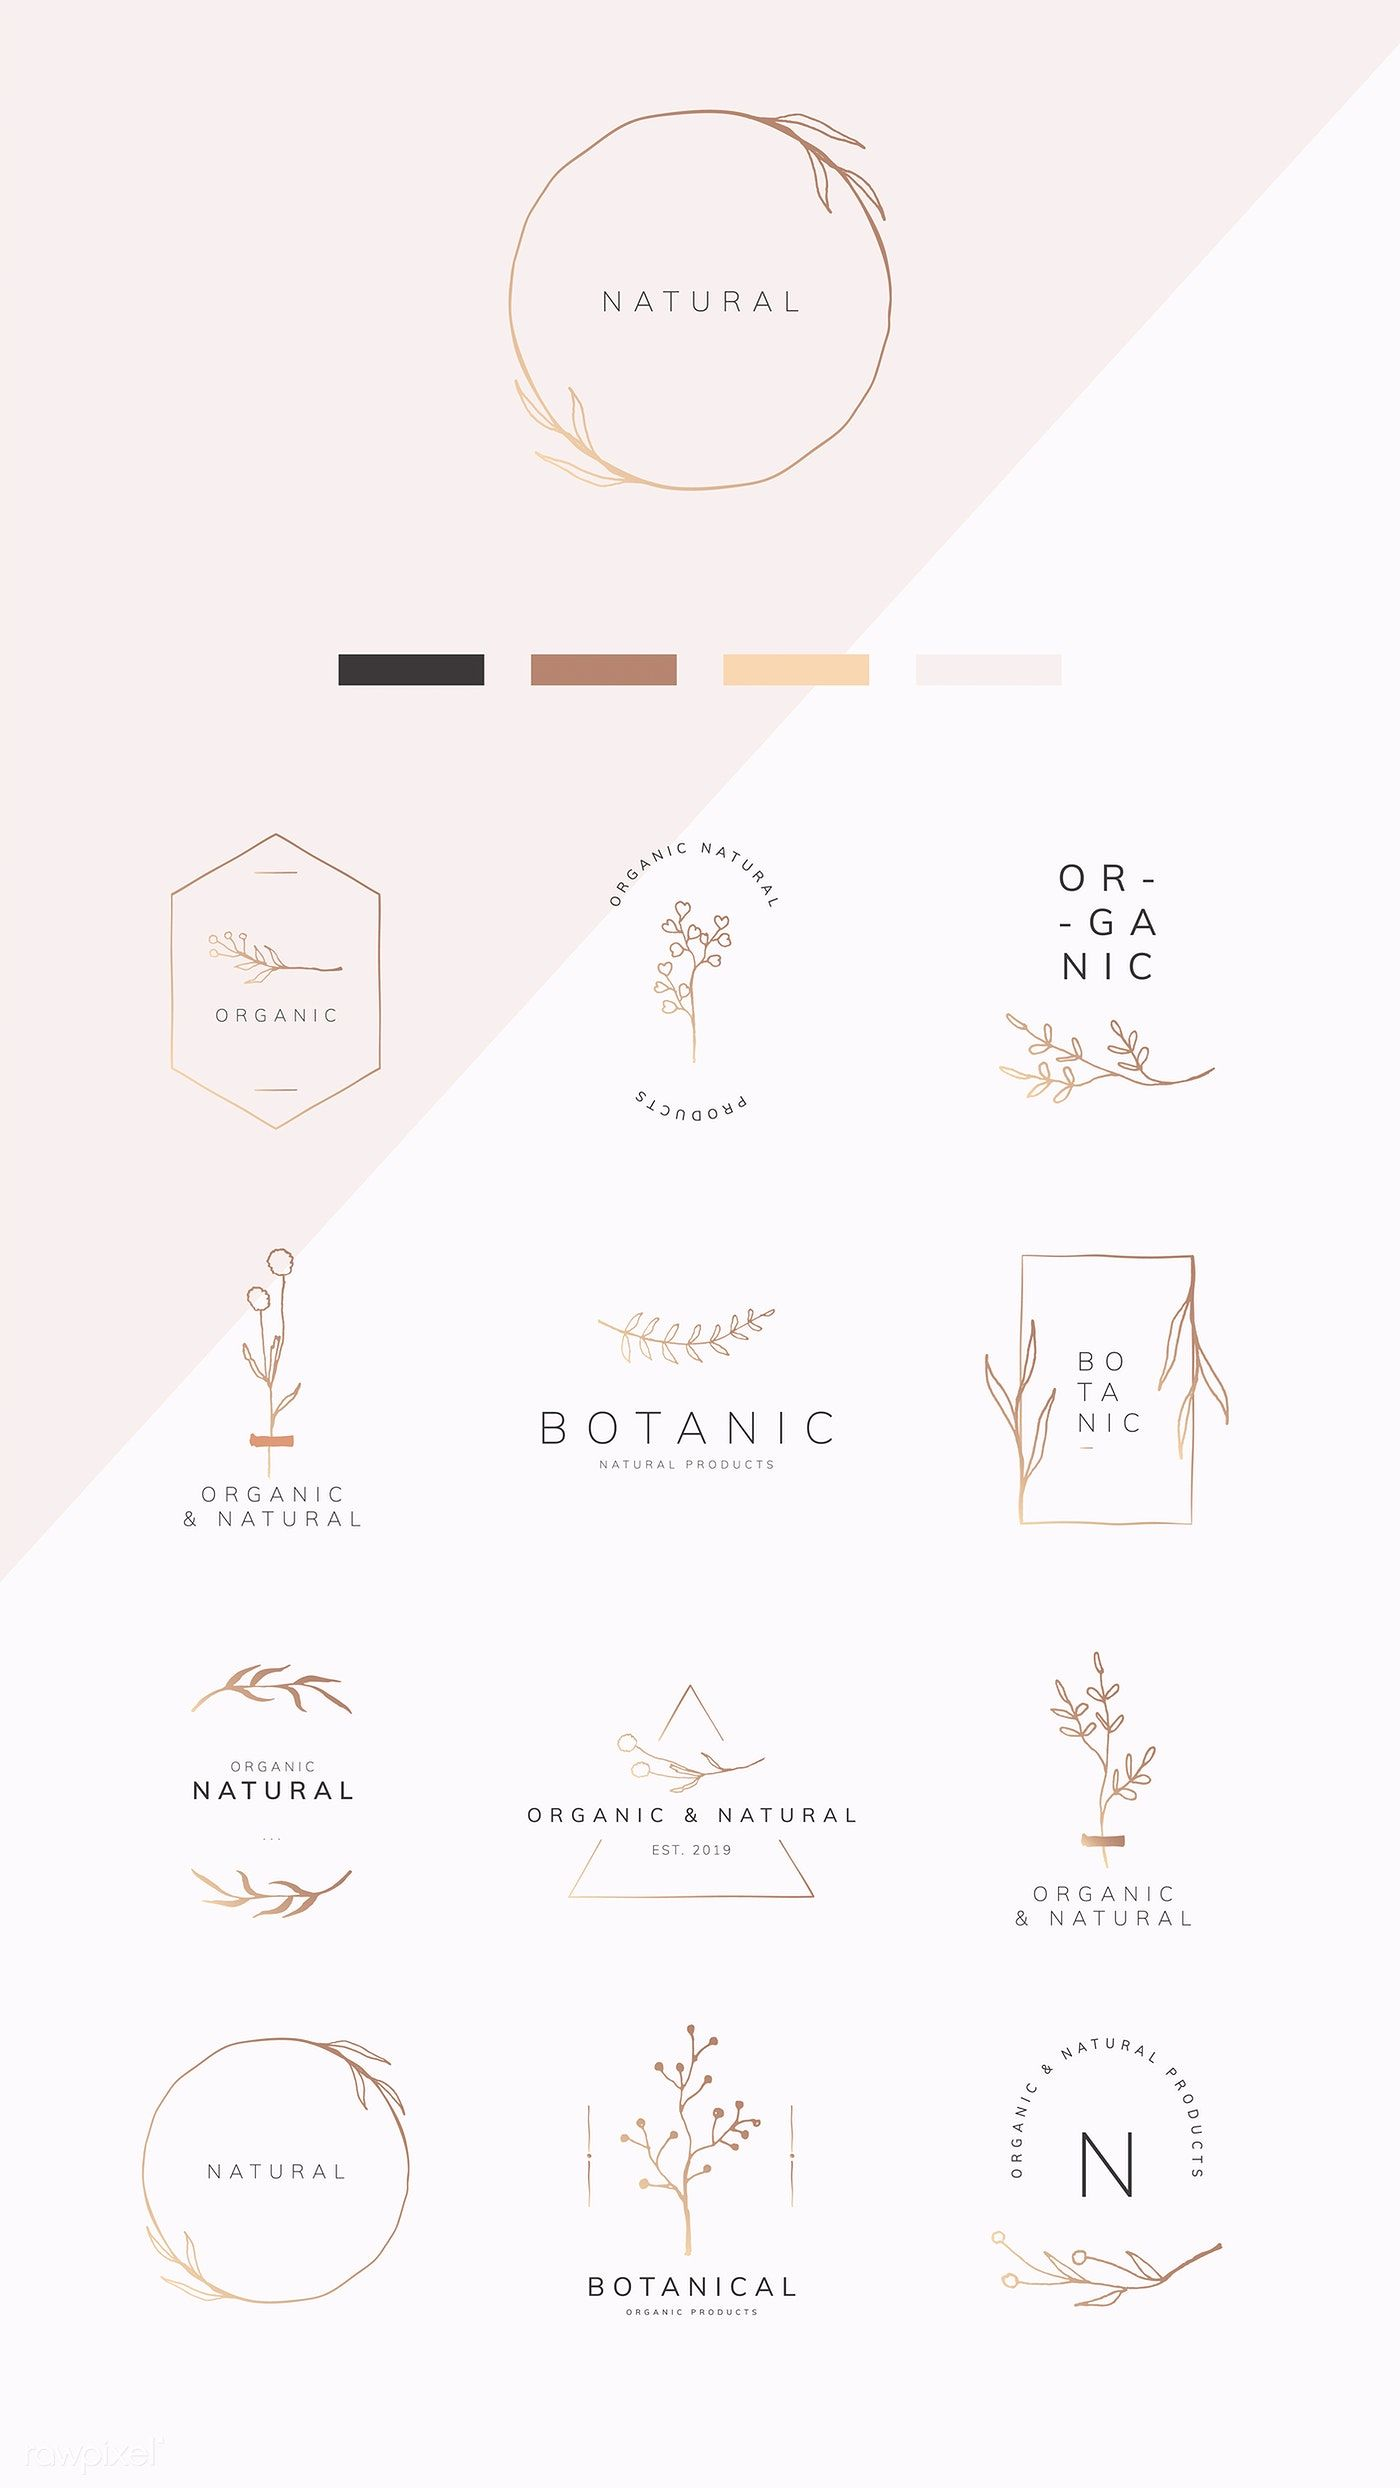 Download premium illustration of Organic product brand logo vector is part of Vector logo design, Branding design logo, Logo branding, Logo design inspiration, Vector logo, Branding - Download premium illustration of Organic product brand logo vector collection by sasi about badge, beige, beige background, botanic and botanical